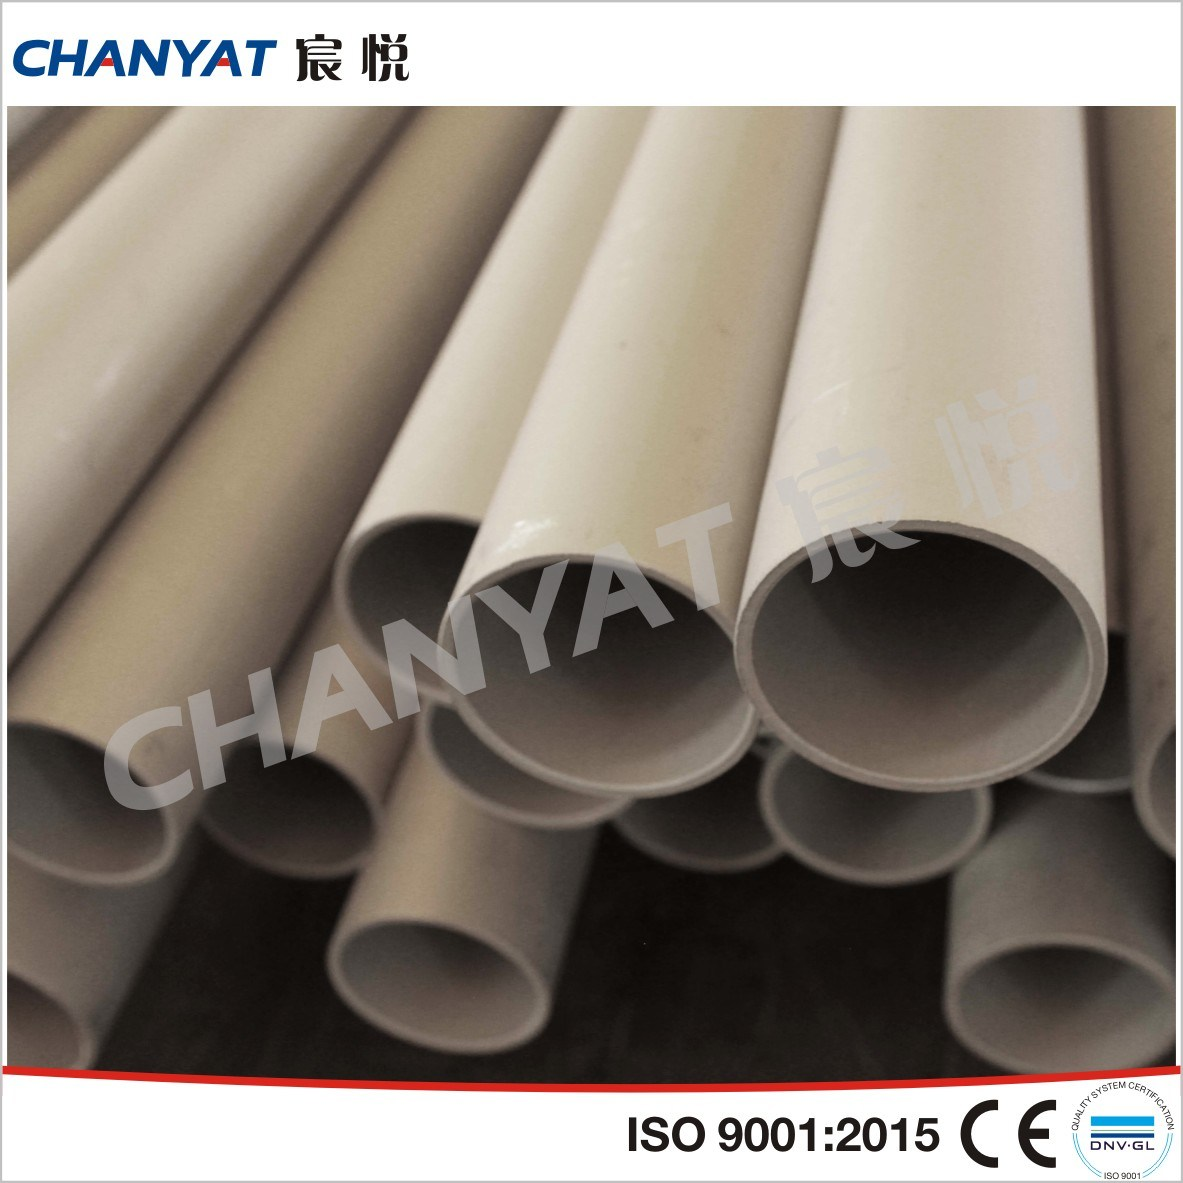 Seamless Aluminium Alloy Pipe and Tube (ASTM B210, B241, B234, 3003, 6061, A93003, A96061)